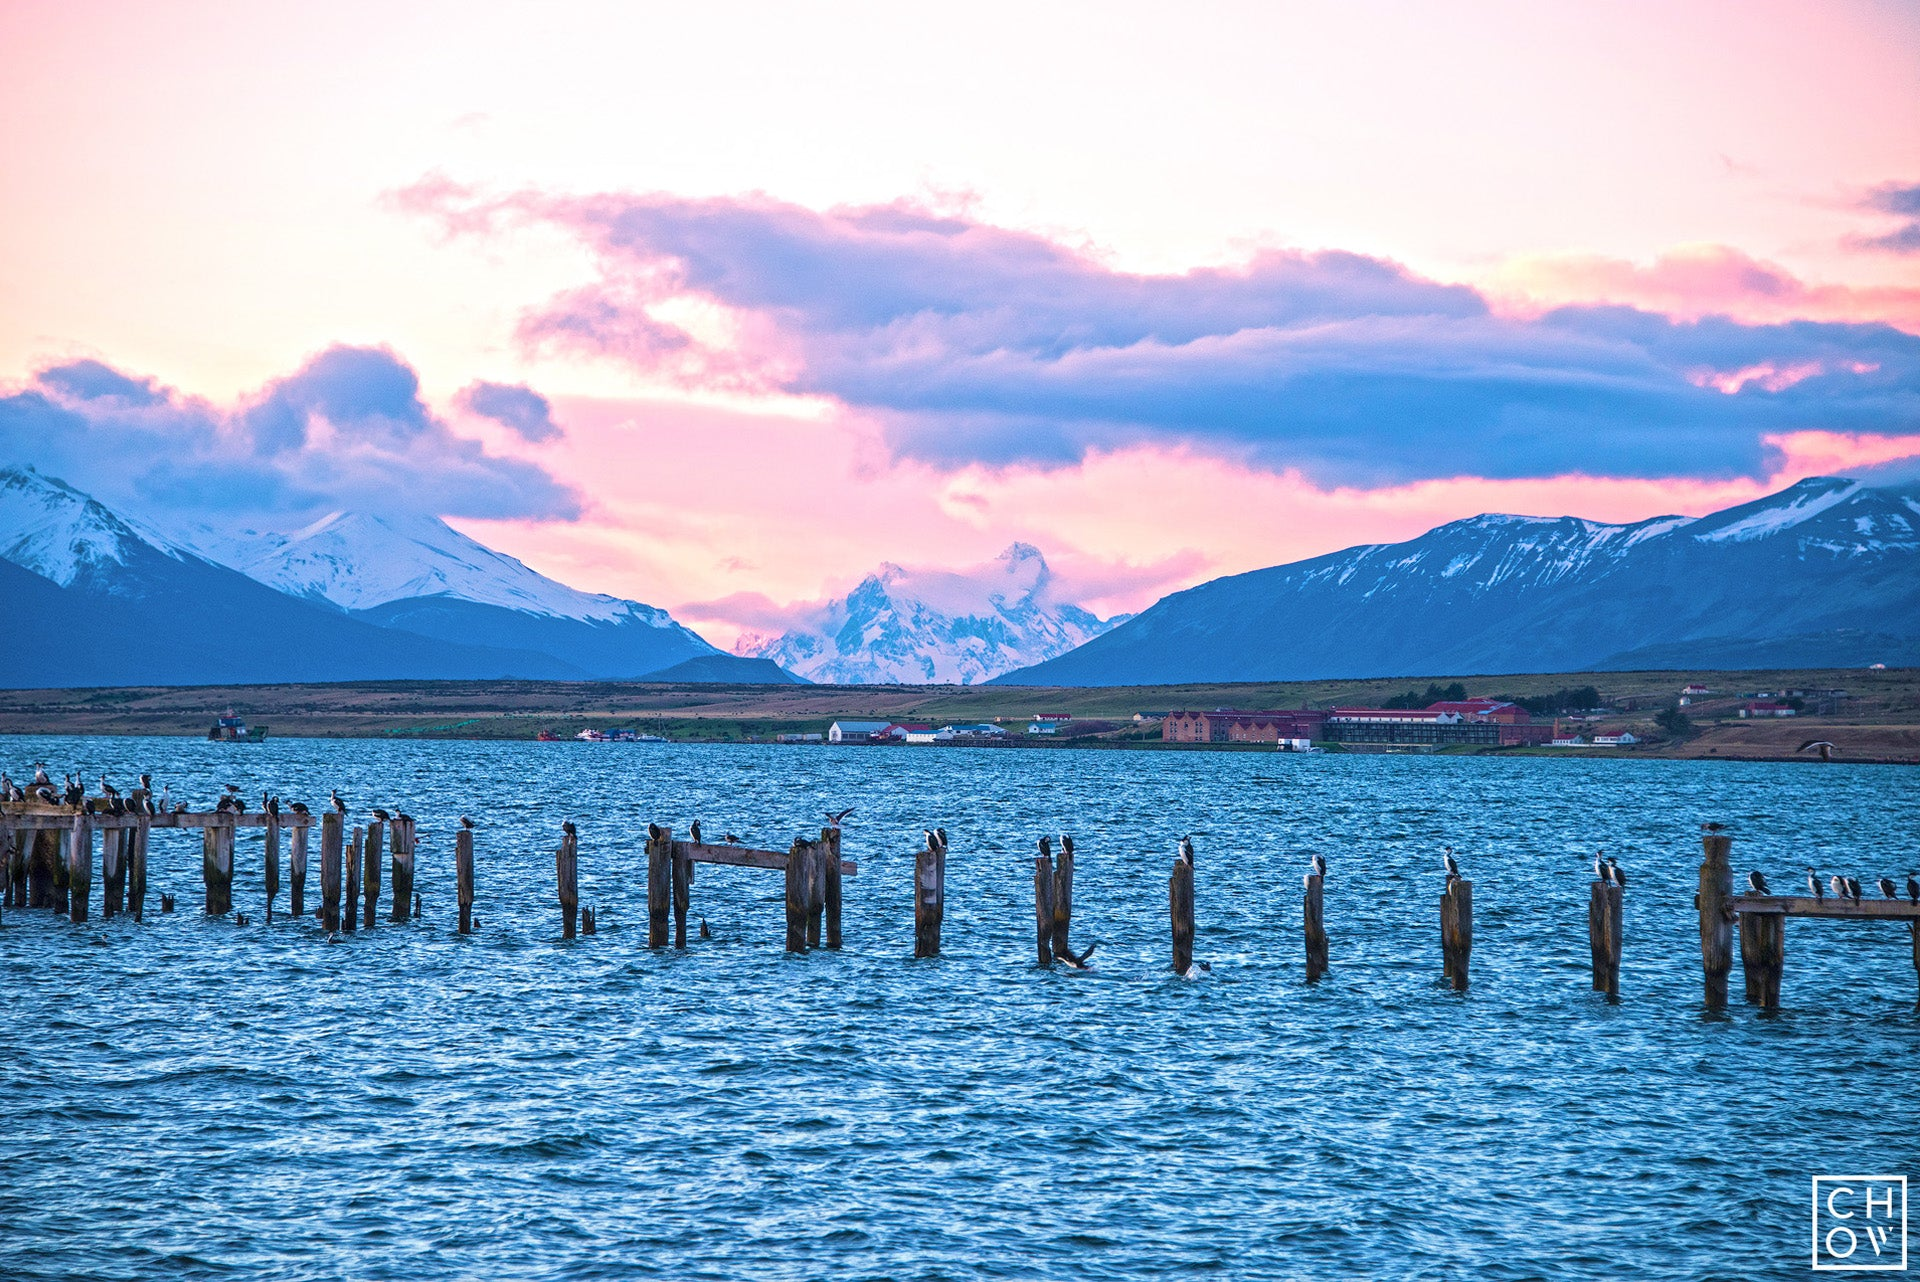 Sunset over Puerto Natales, Chile